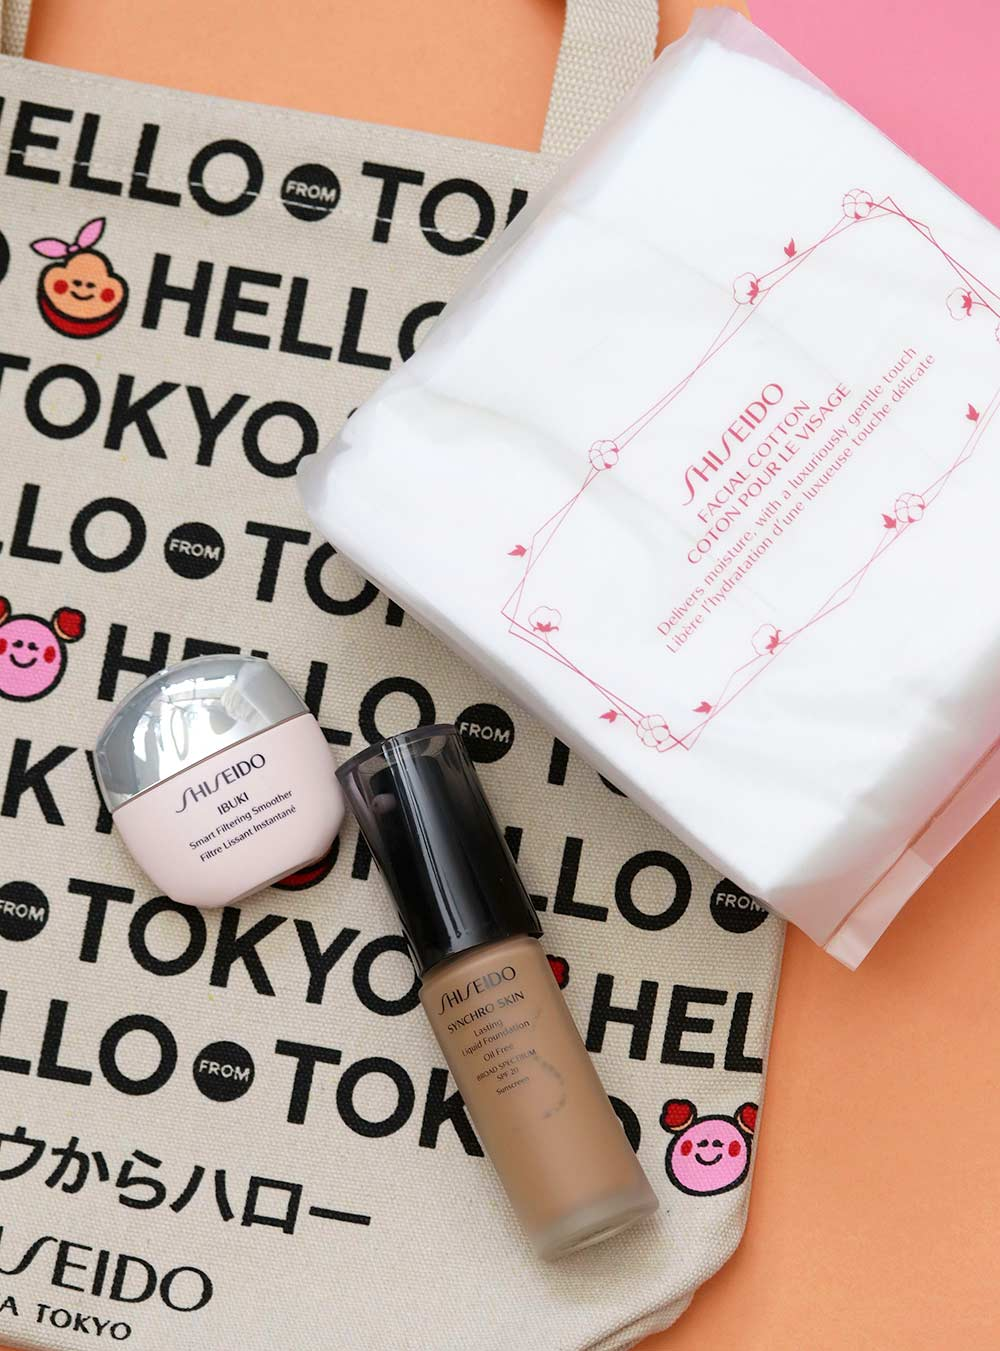 Hello From Tokyo! Shiseido Online Skin Care (and Tote Gift With Purchase) Available Now Through August 27th